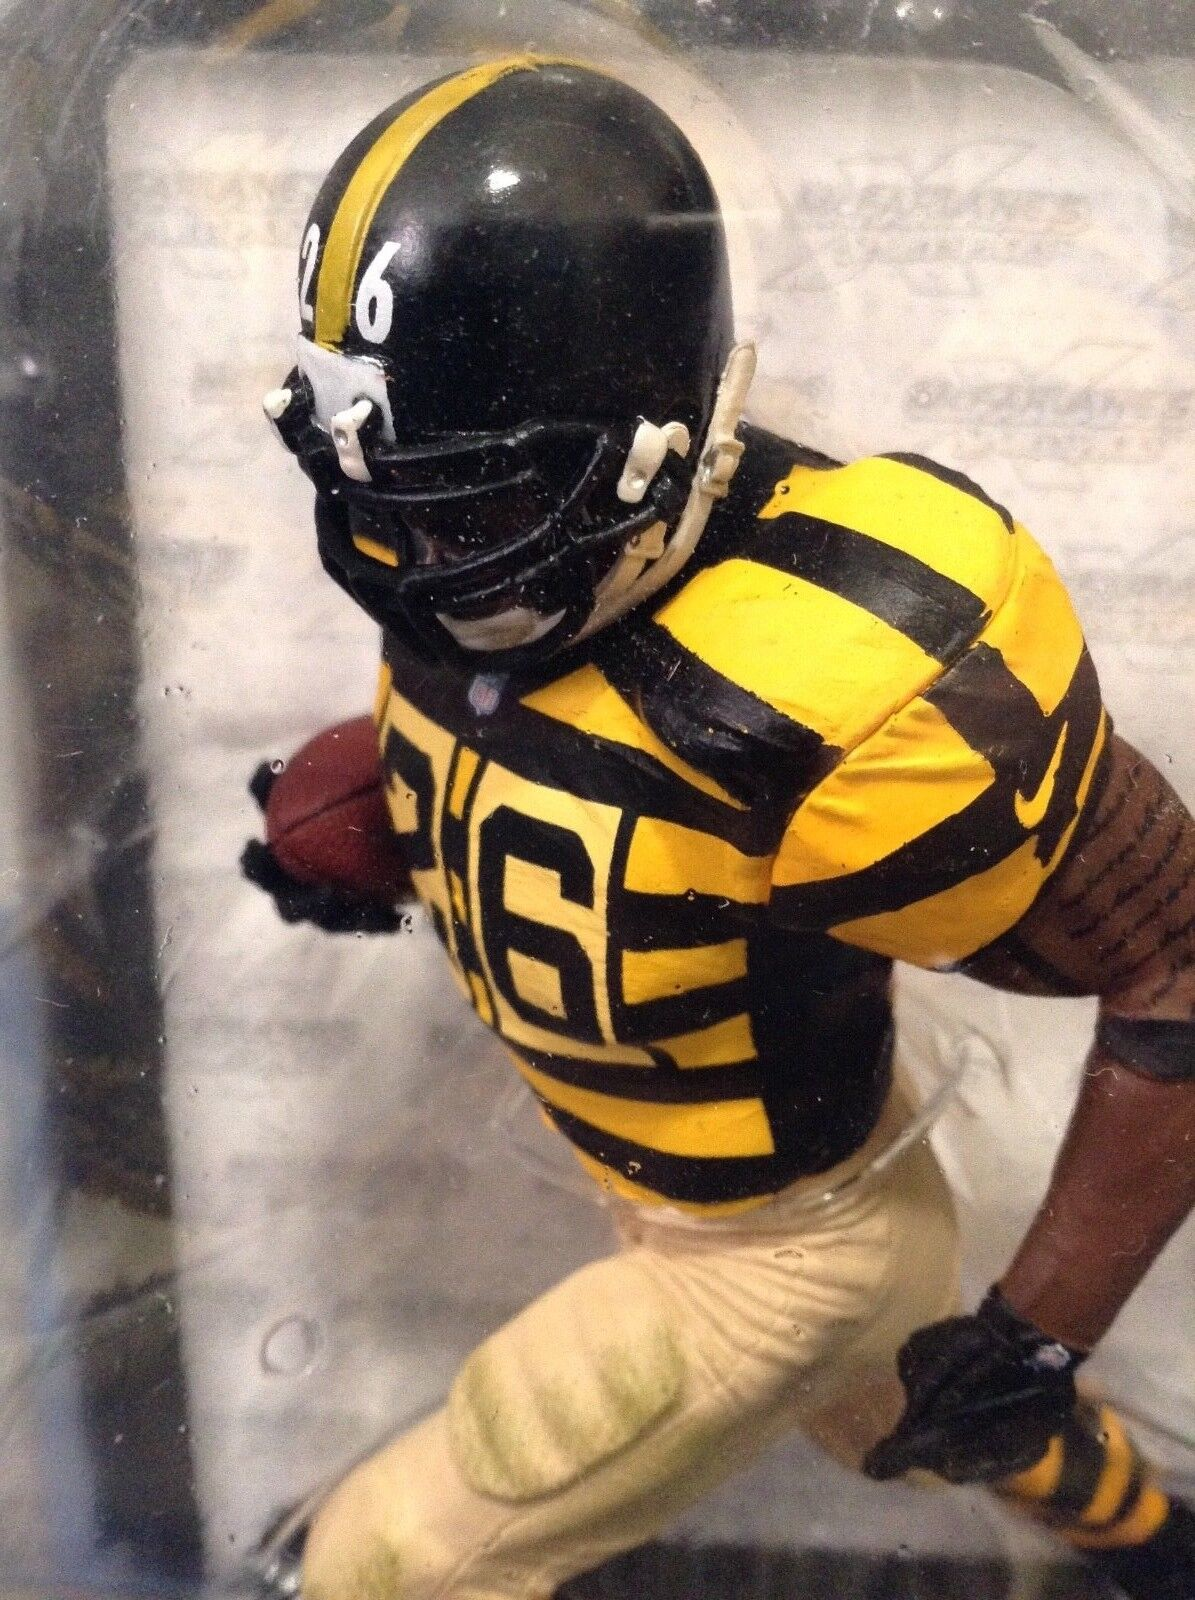 LOW  No.  - NFL PITTSBURGH STEELERS Le'VEON BELL     McFARLANES SERIES 35  consegna rapida